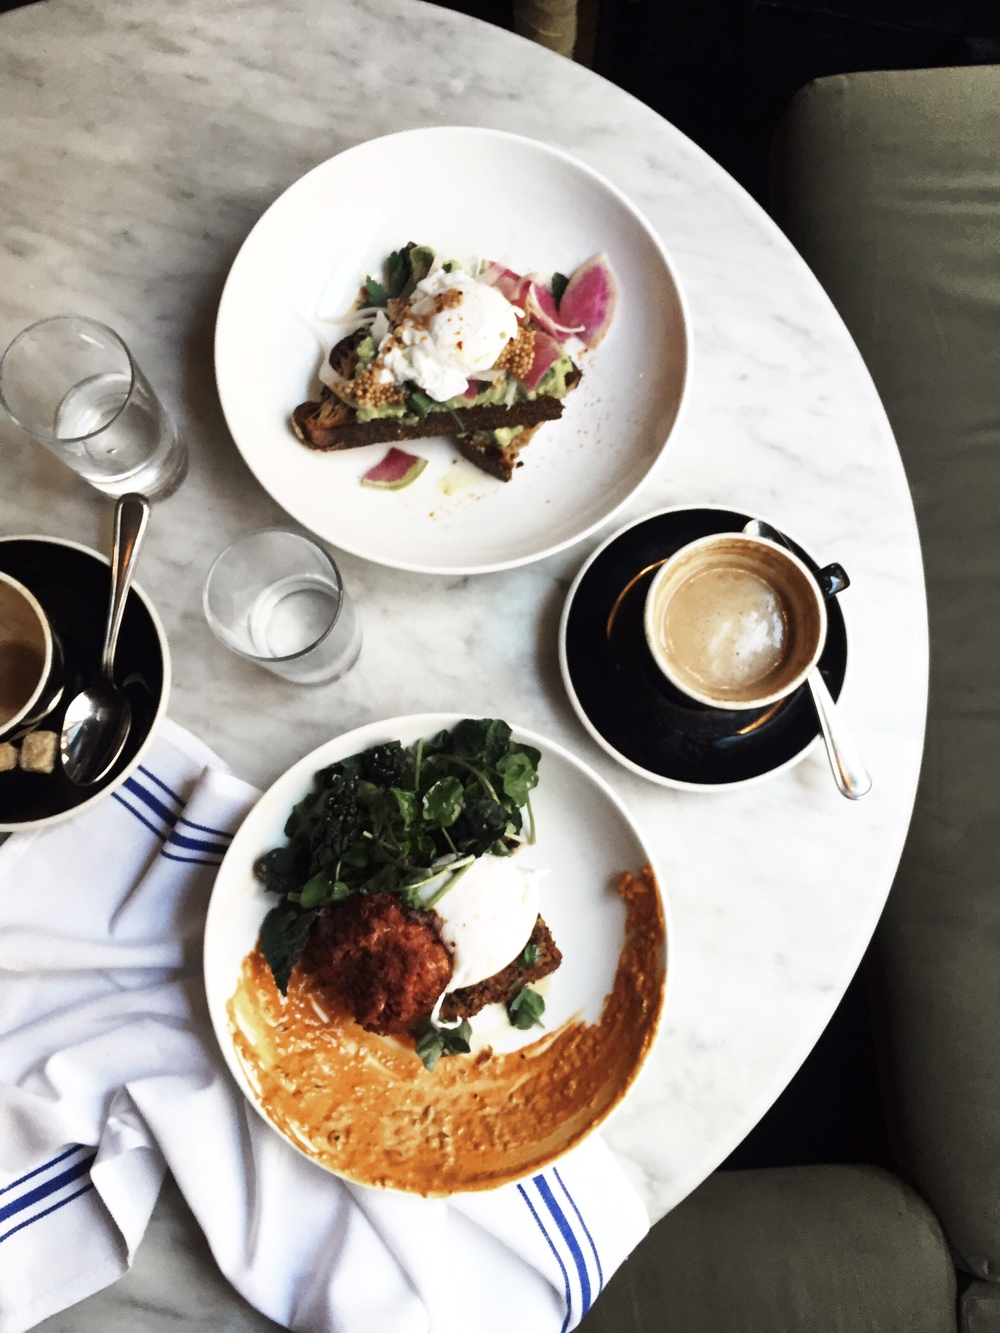 navy new york, soho, marble table, quinoa crisp, daily cortado, arushi khosla, arushi.co